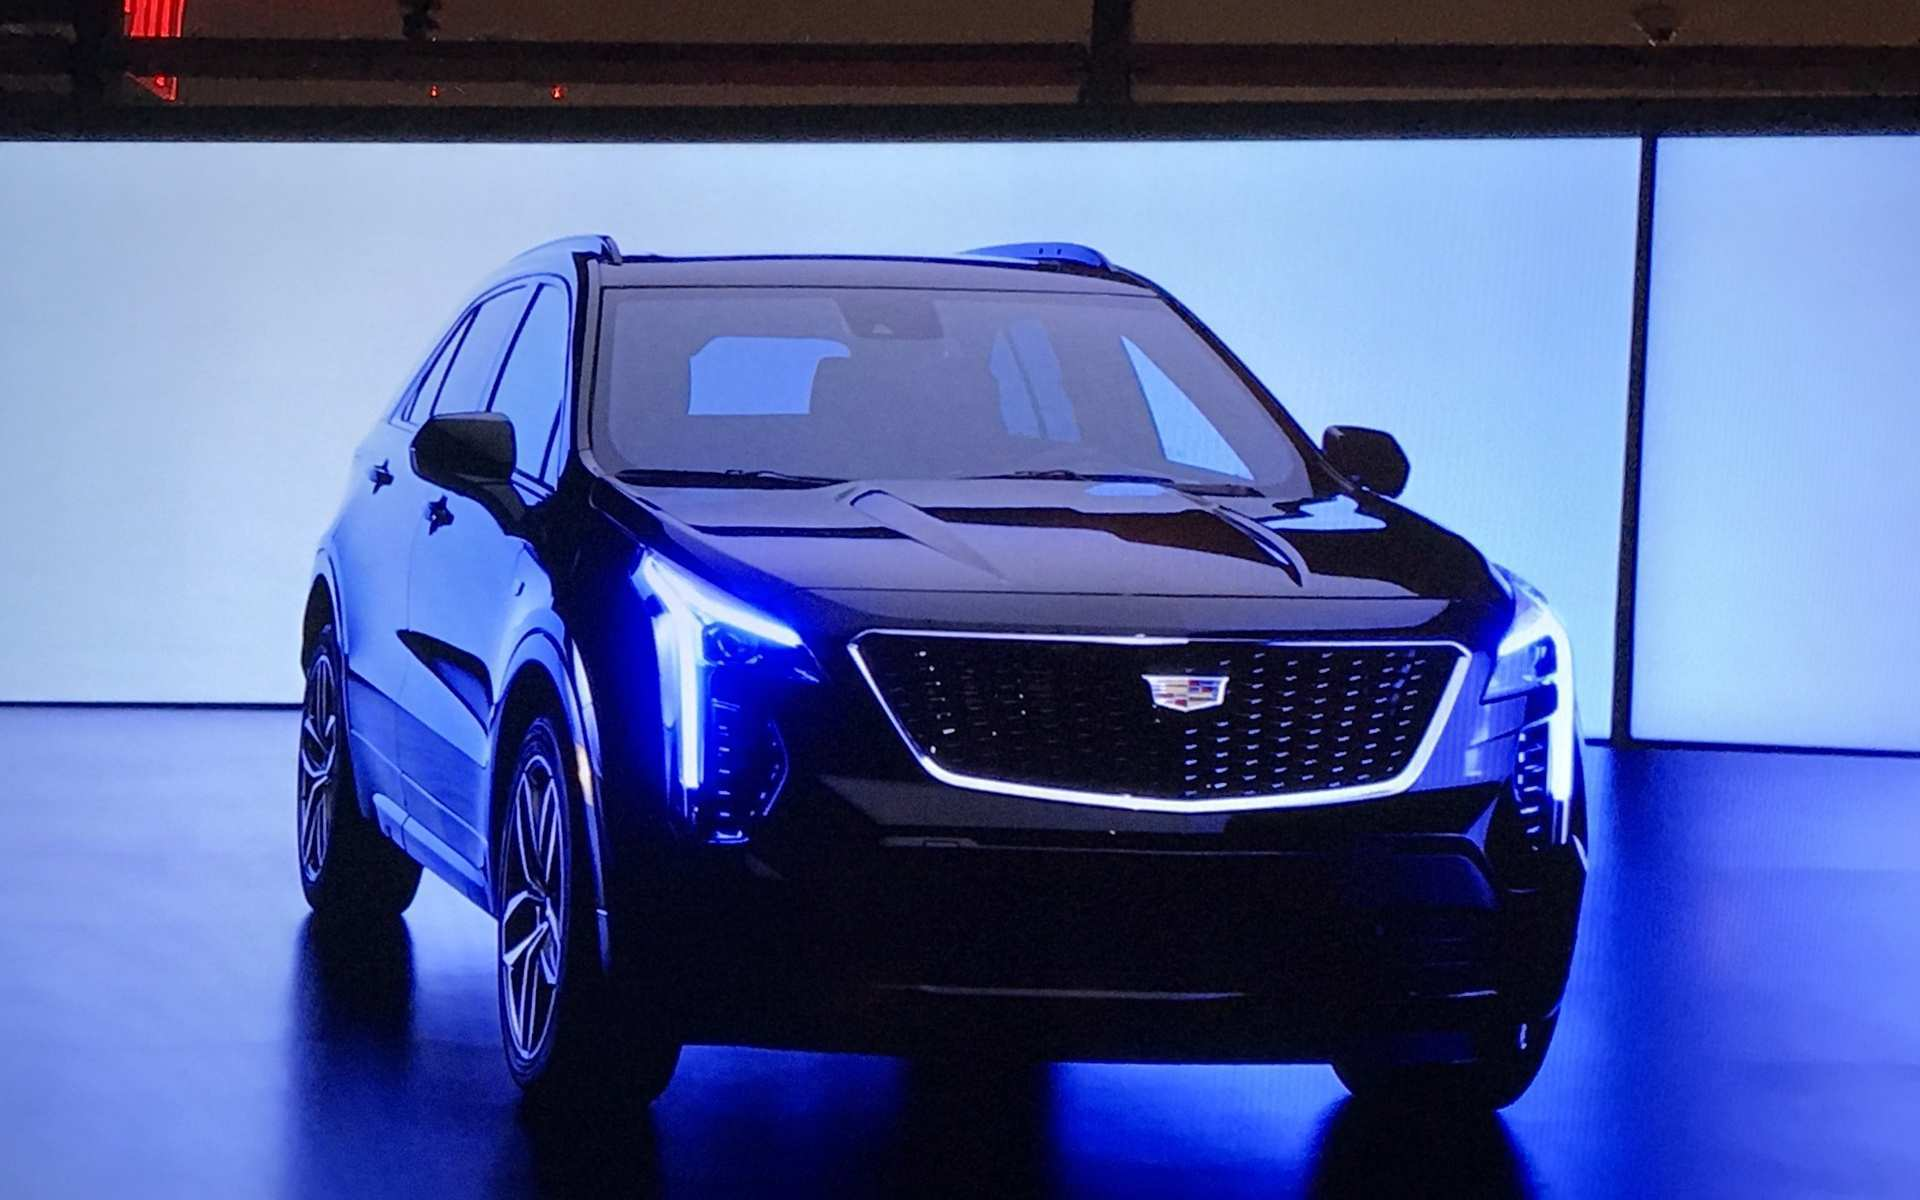 71 Gallery of Cadillac 2019 Xt4 Price New Engine Research New with Cadillac 2019 Xt4 Price New Engine